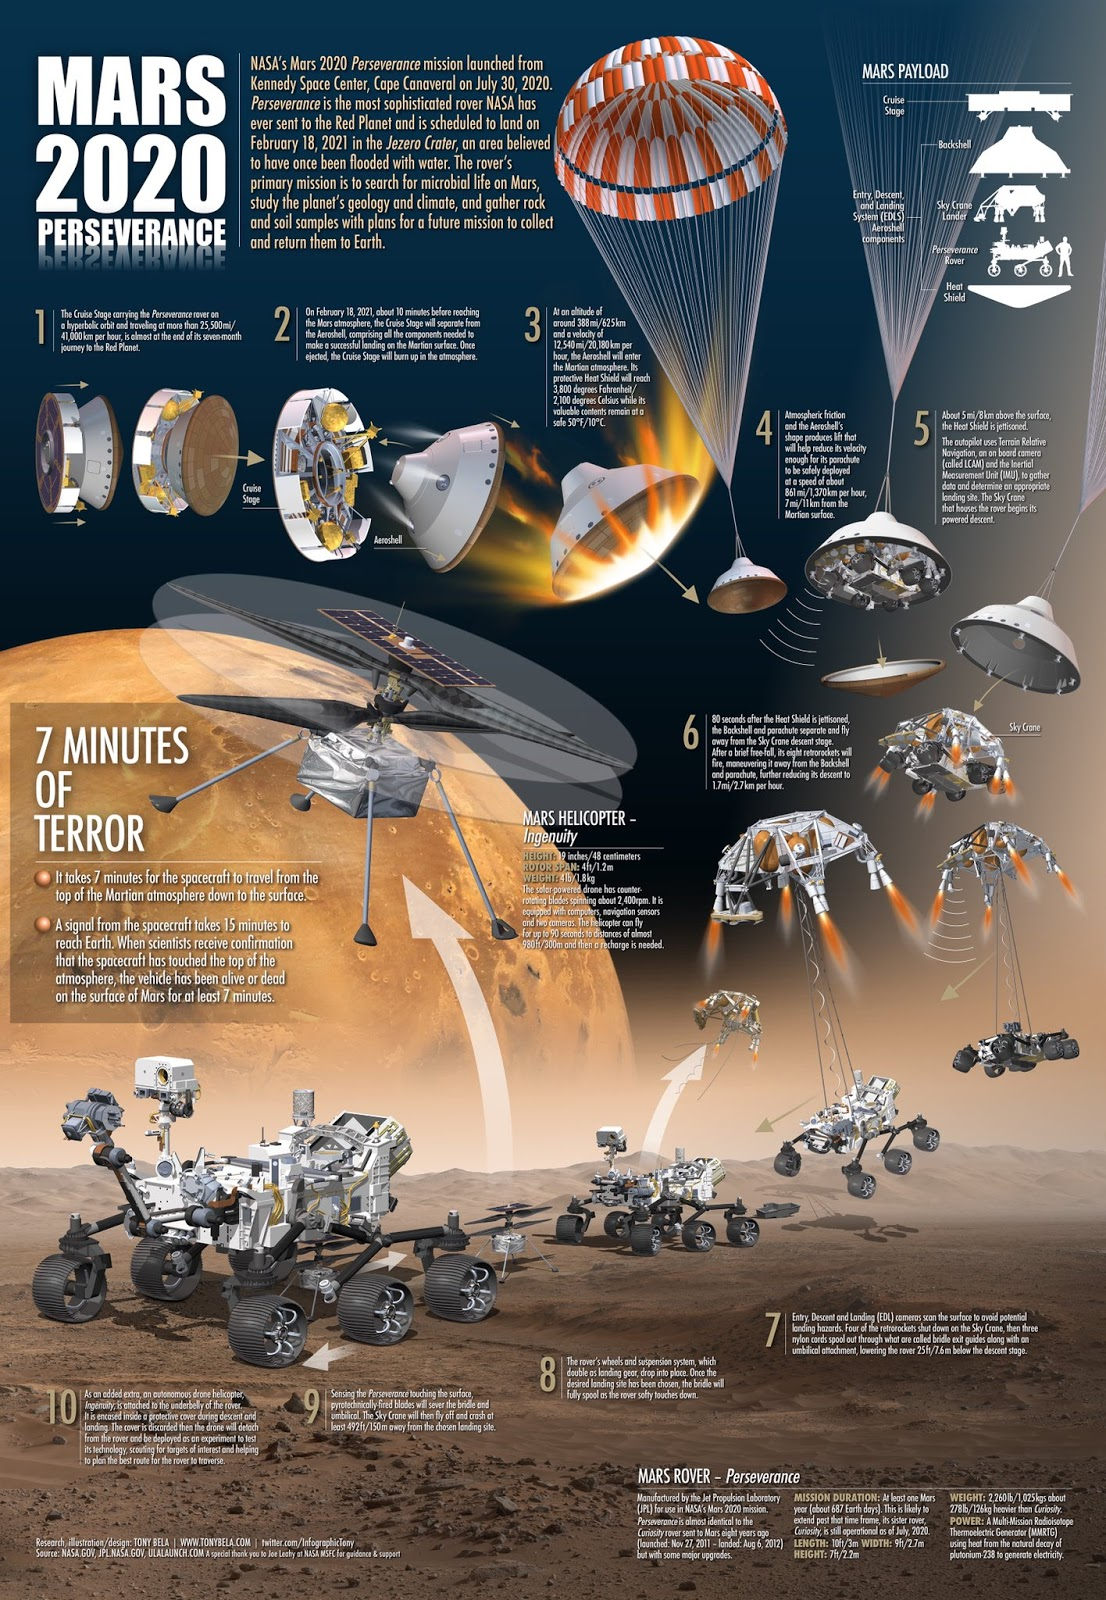 NASA Mars 2020 Perseverance rover landing sequence infographic by Tony Bela